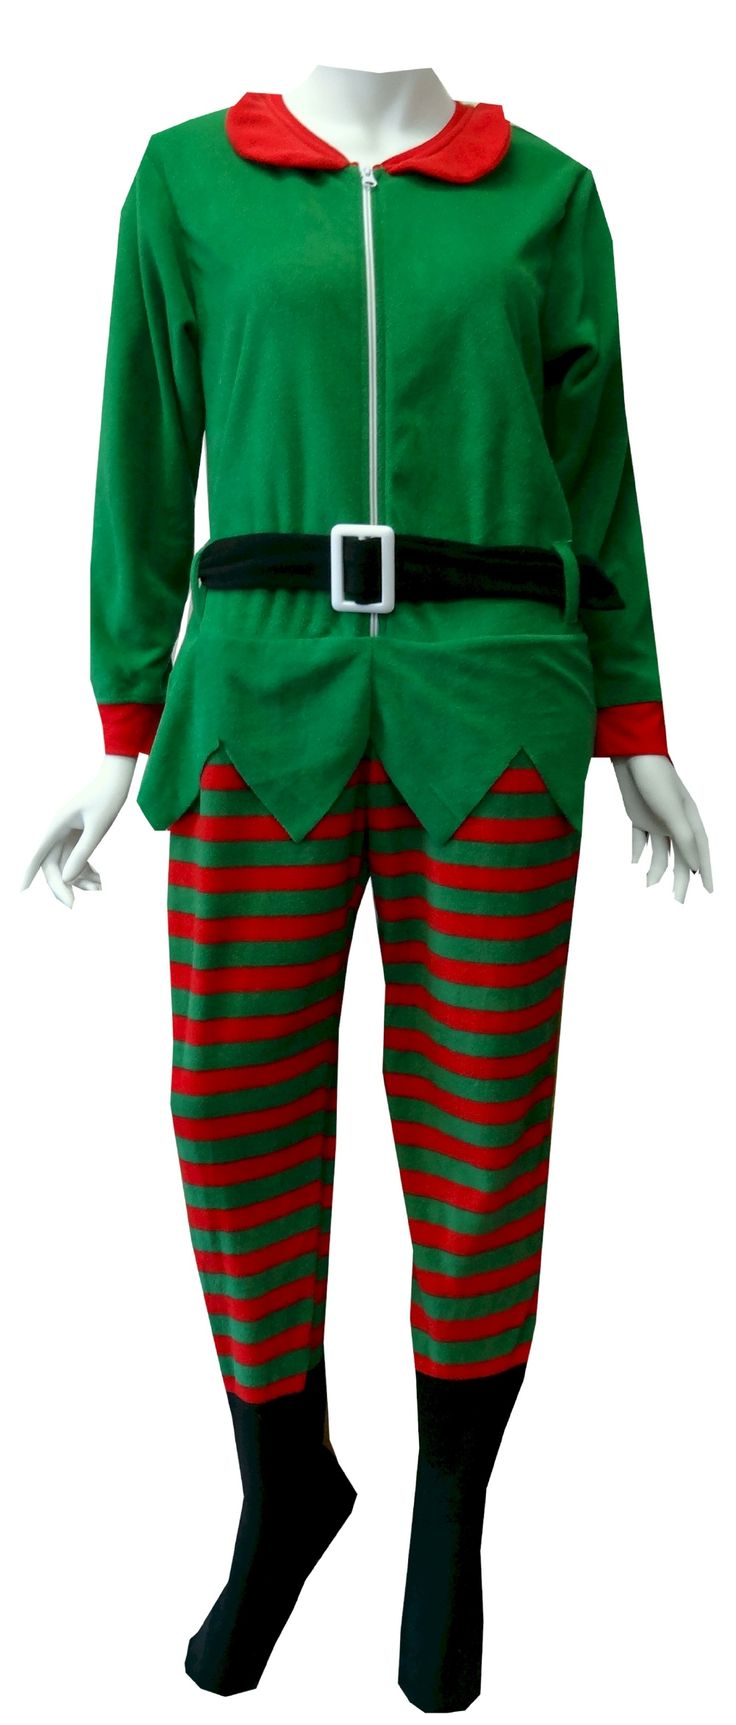 Red And Green Elf Onesie Footie Pajama Just For The Fun Of